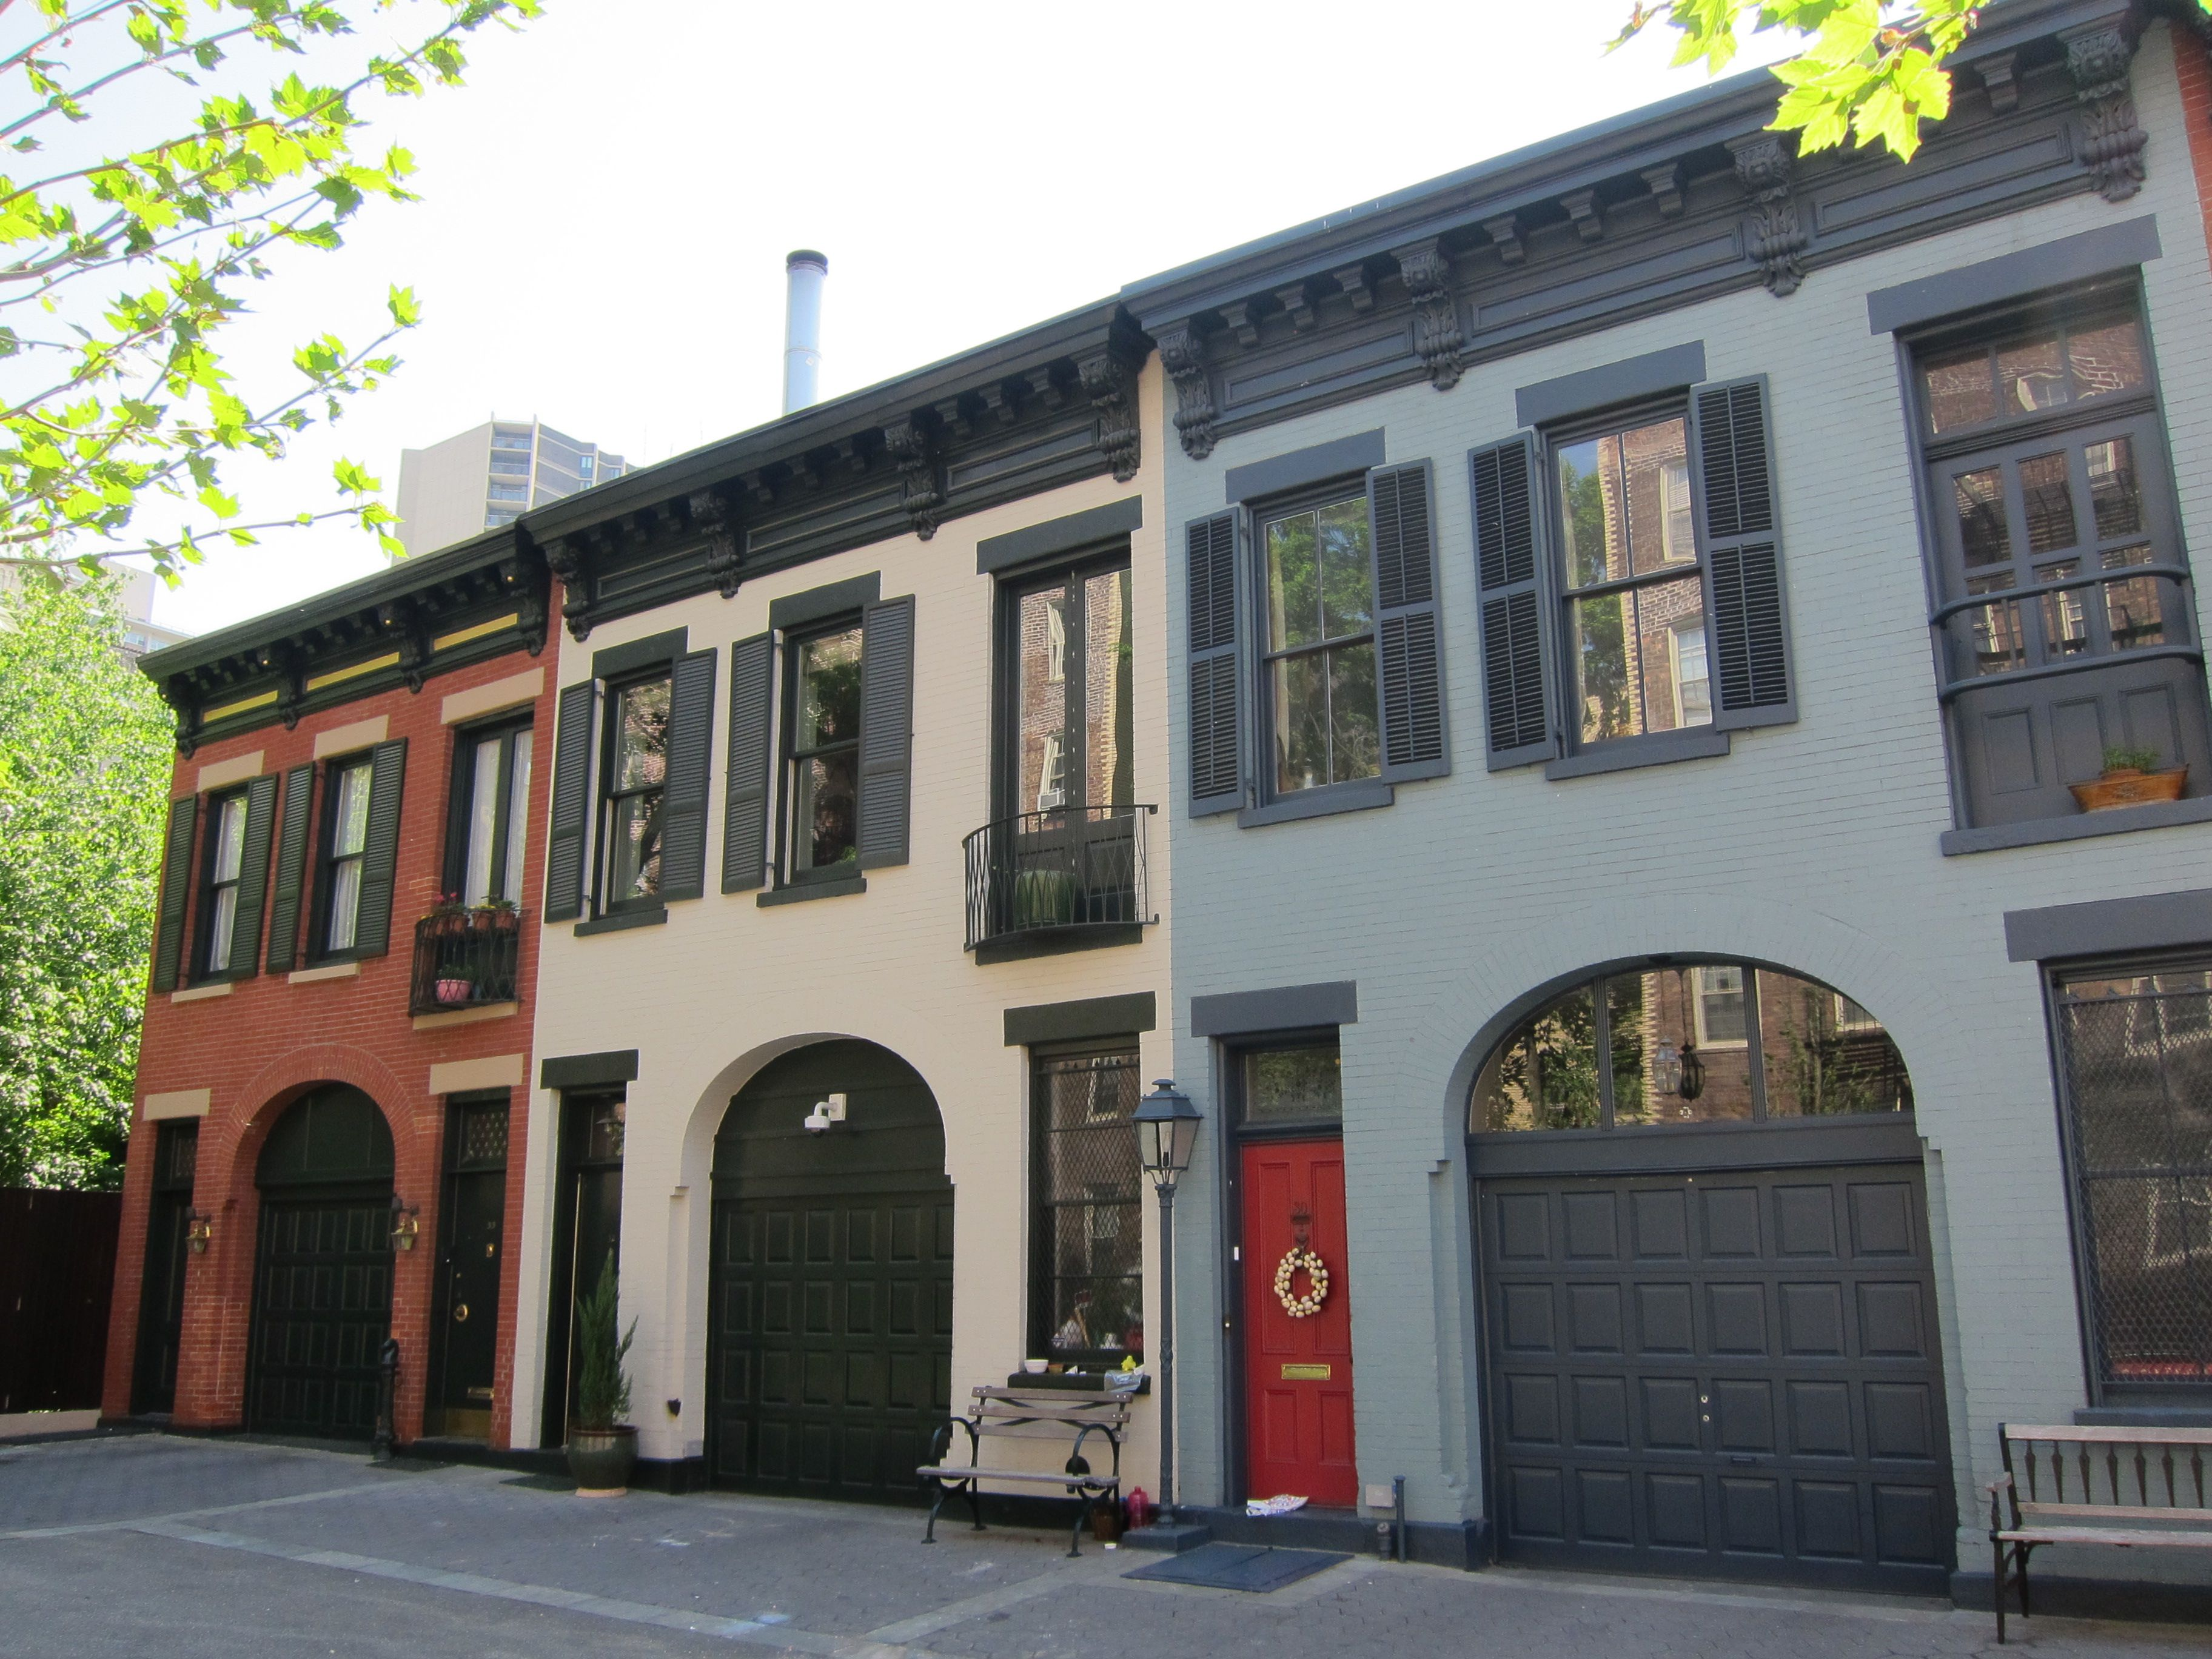 Astounding Carriage Houses On College Place In Brooklyn Heights Download Free Architecture Designs Terchretrmadebymaigaardcom